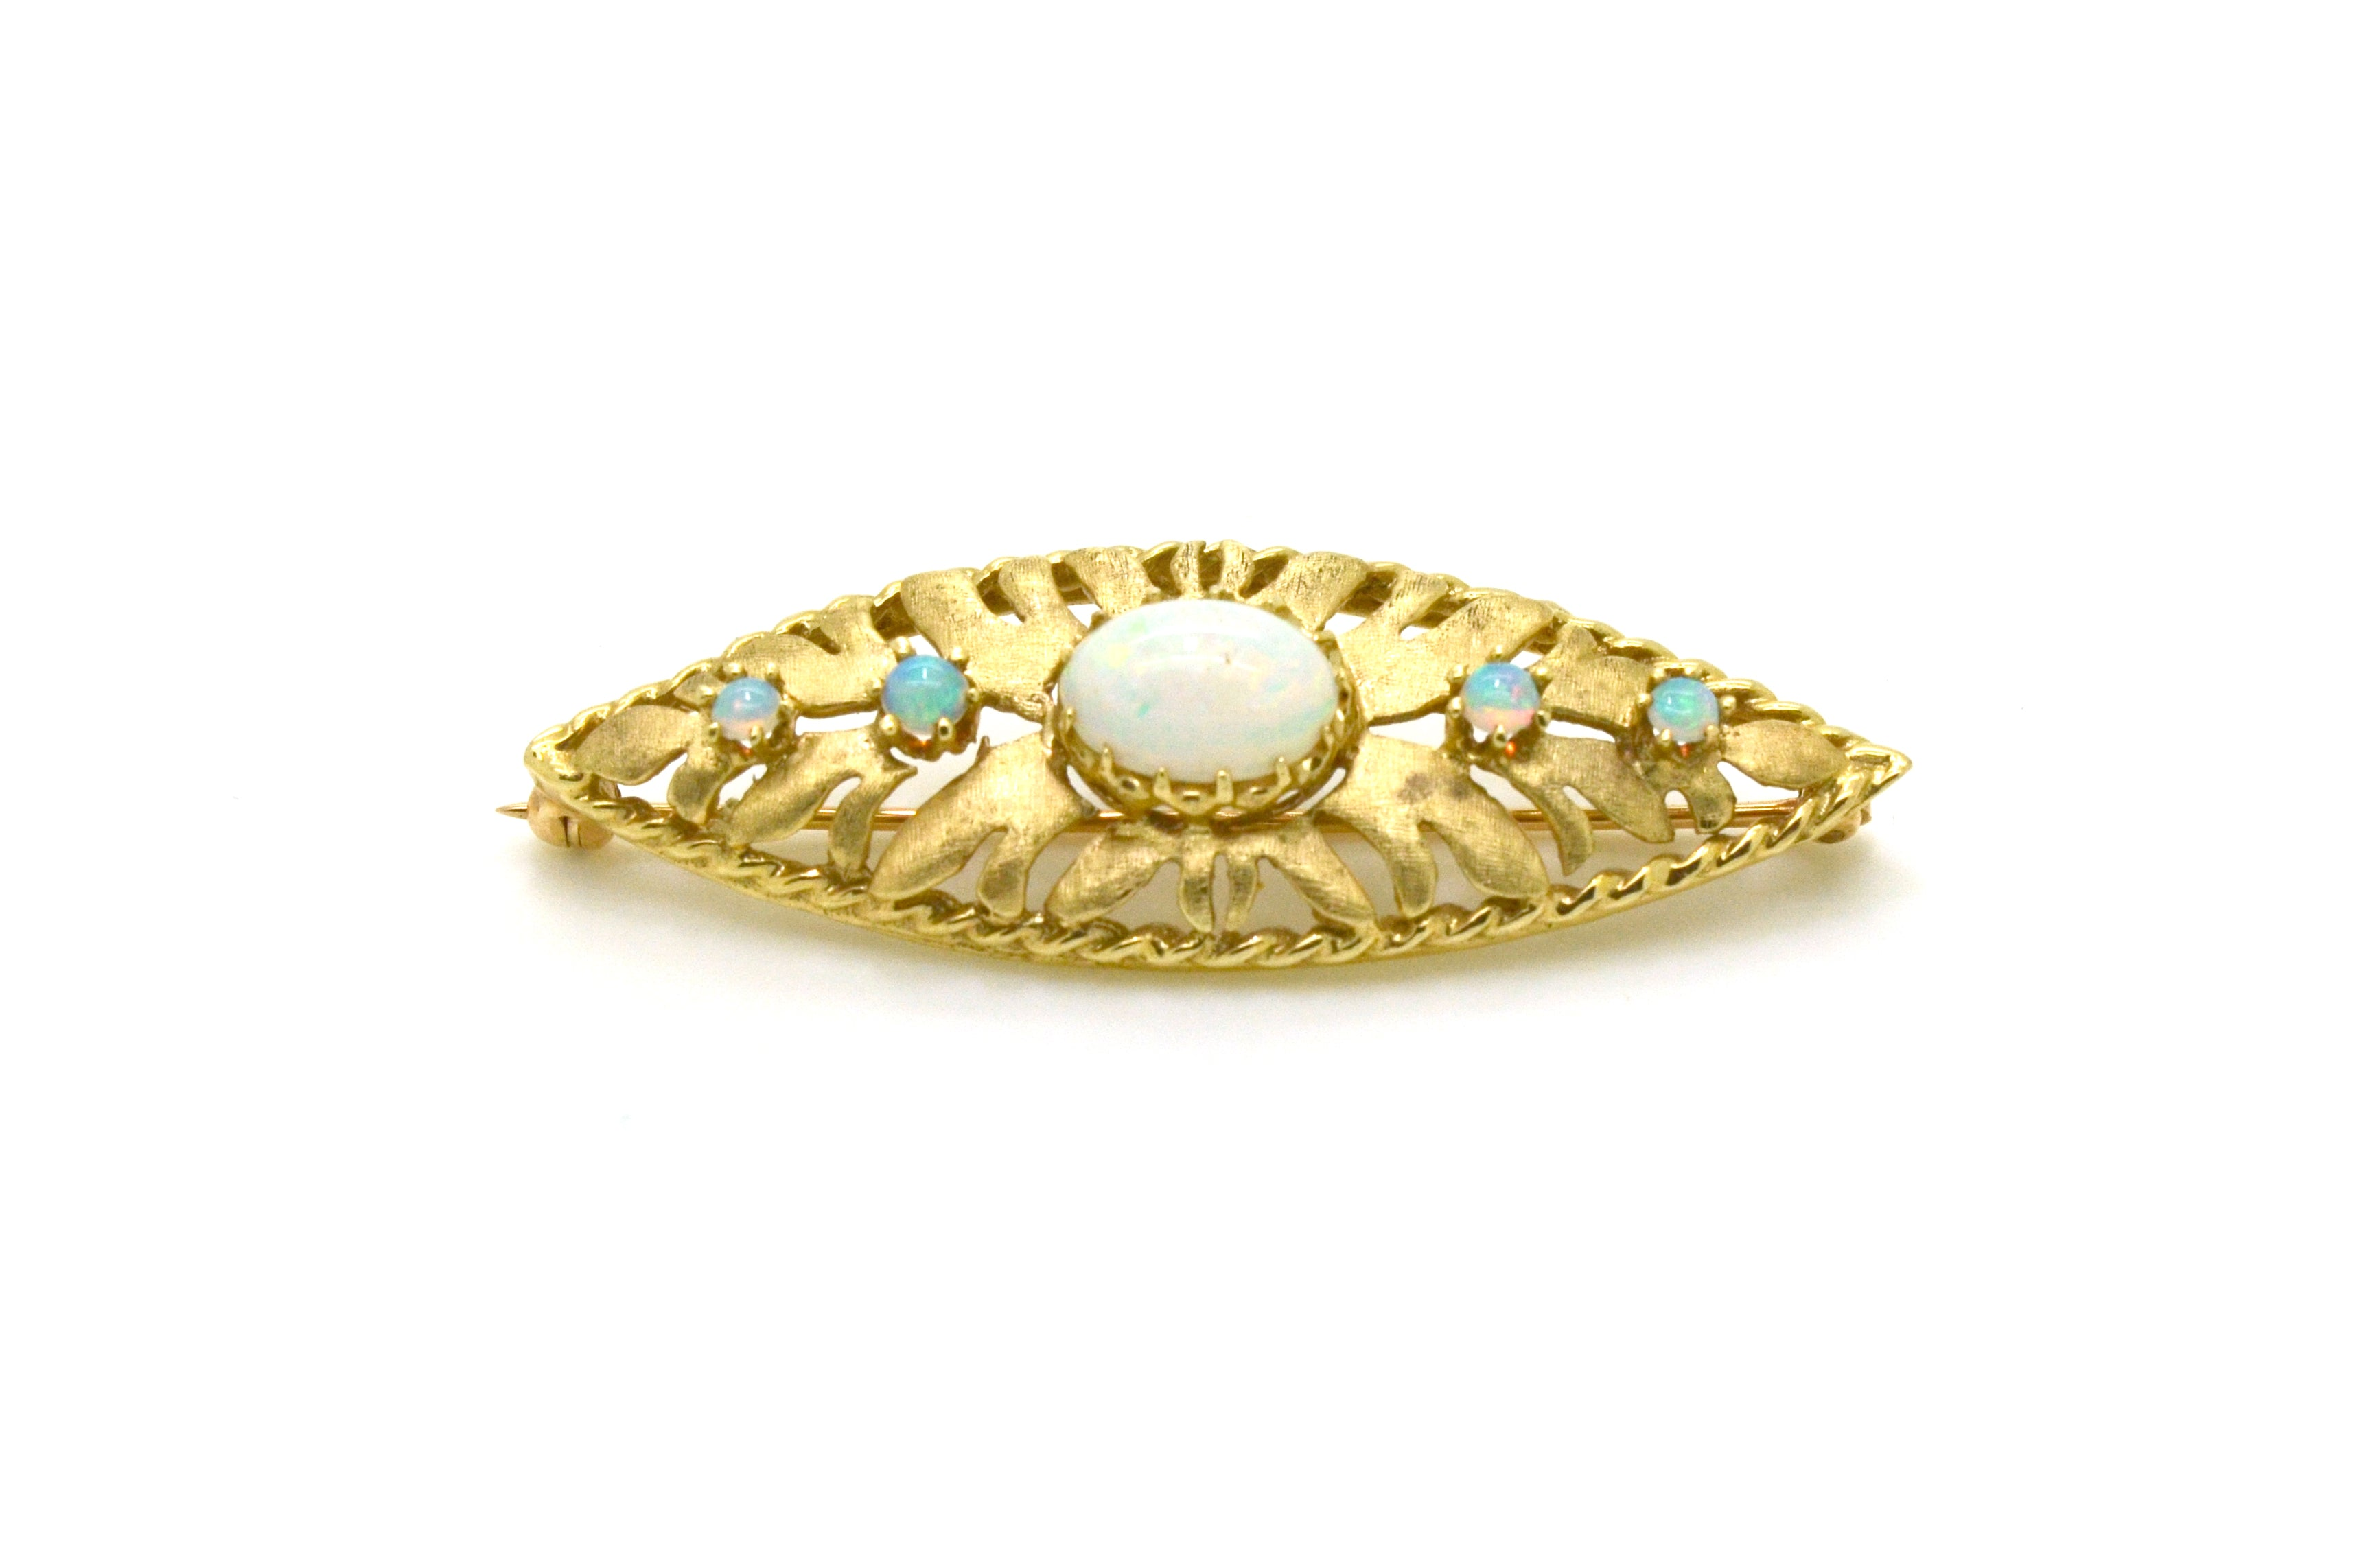 Vintage 14k Yellow Gold Pin Brooch with Opal Cabochon Gemstones - 51 mm by 18 mm